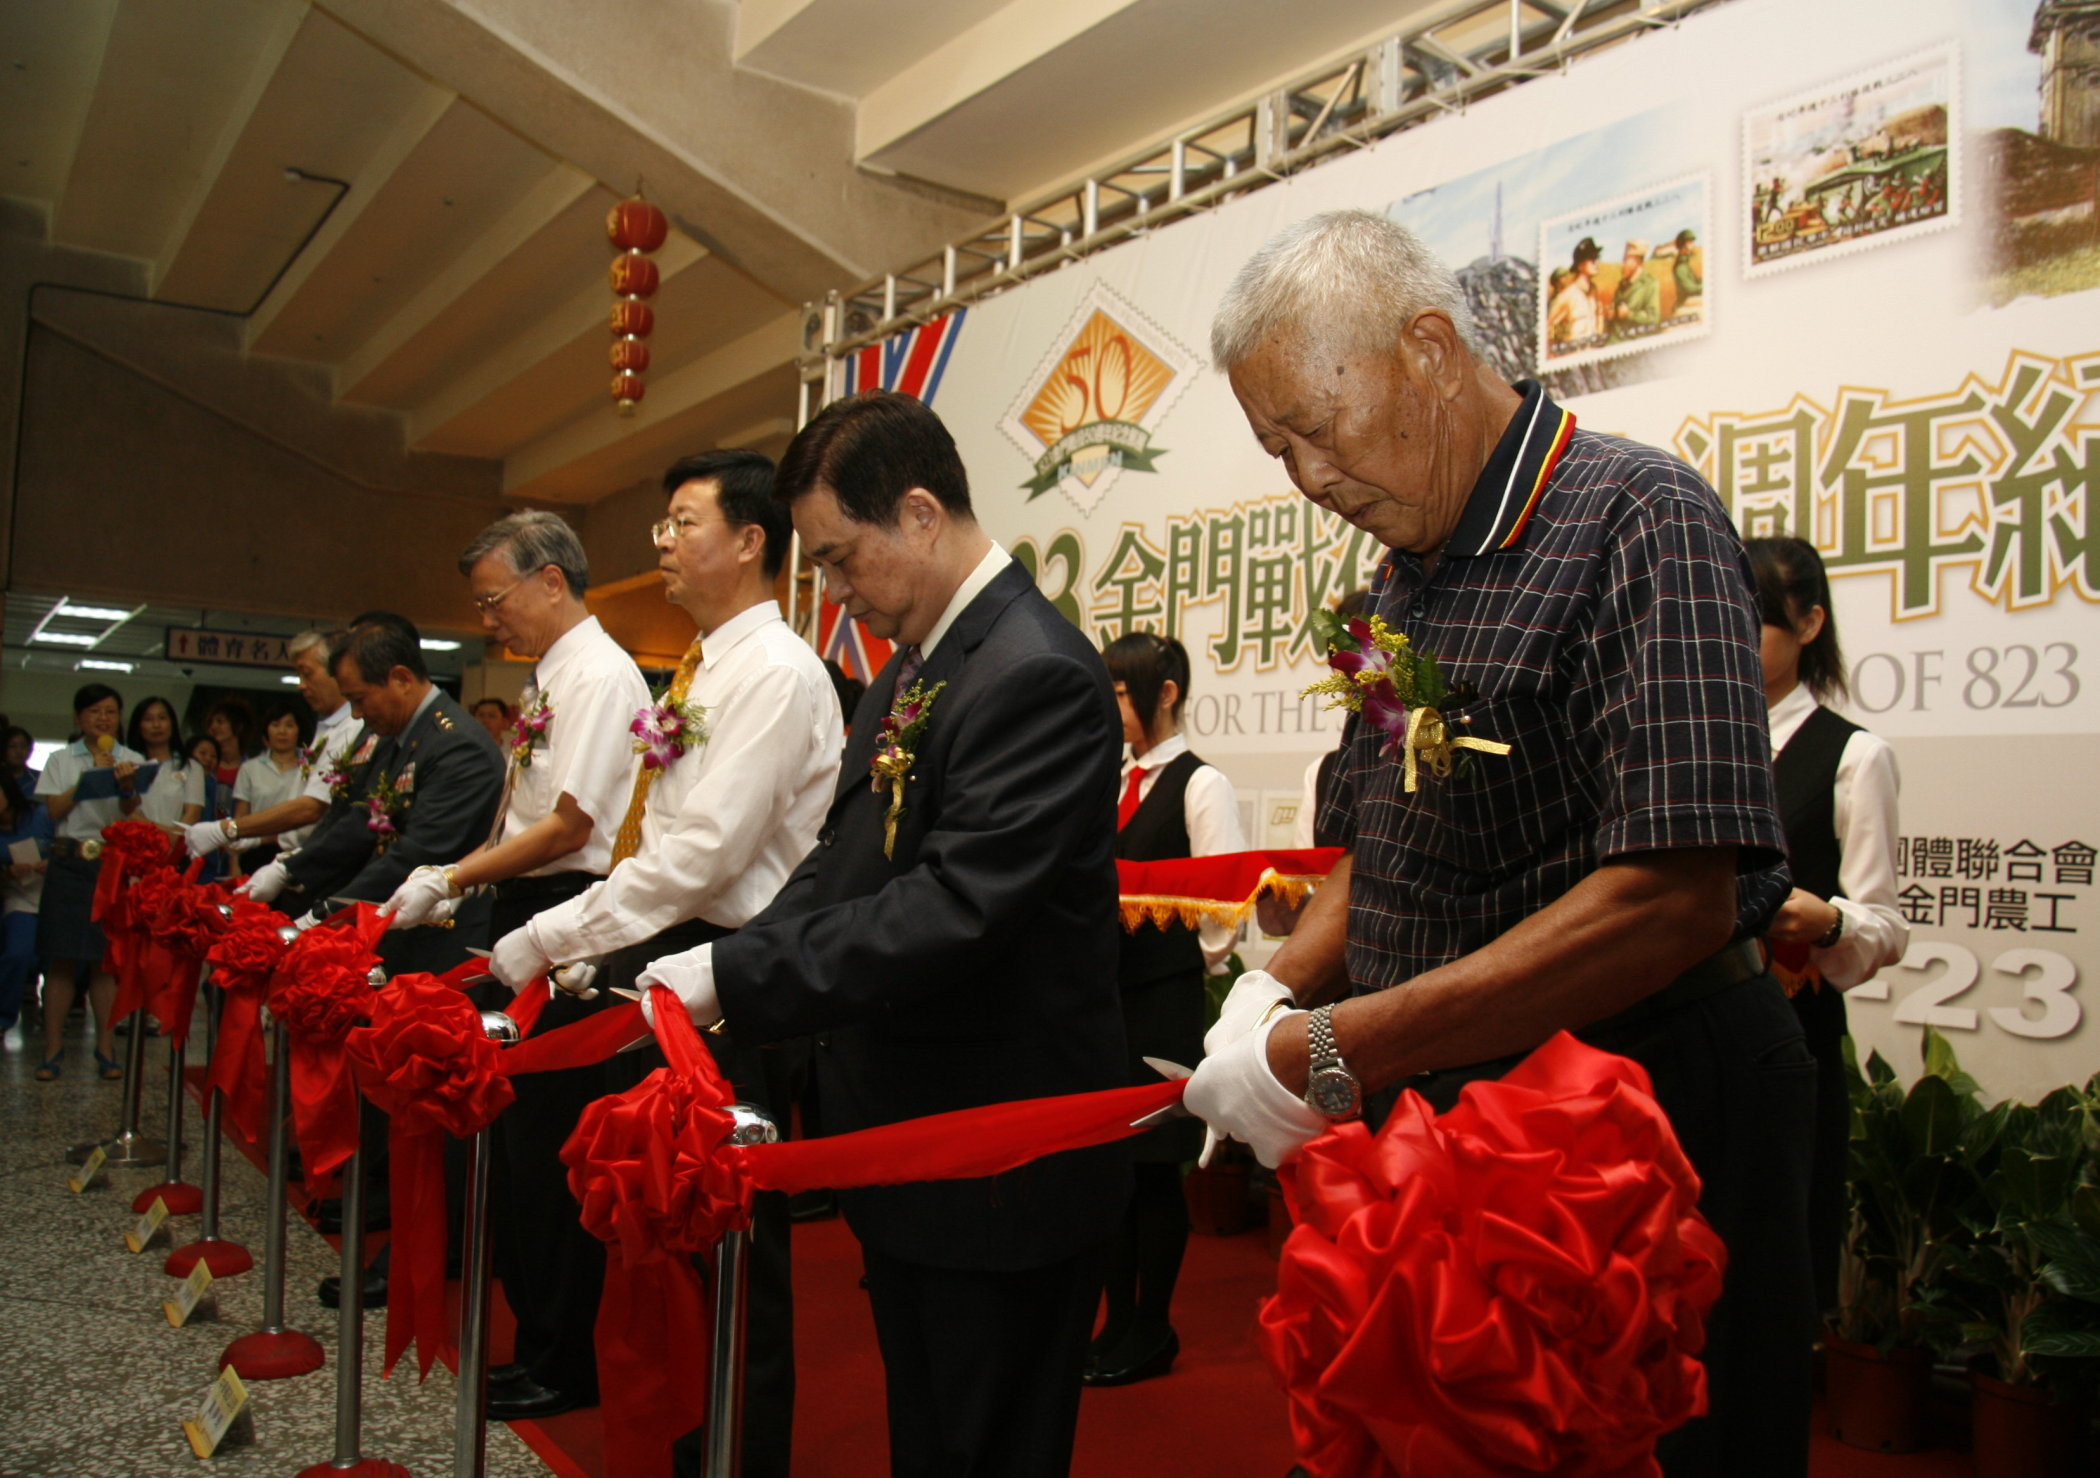 A group of retired postmen who worked on the island of Kinmen during the 1958 artillery battle between Taiwan and China cut the ribbon to unveil a spe...